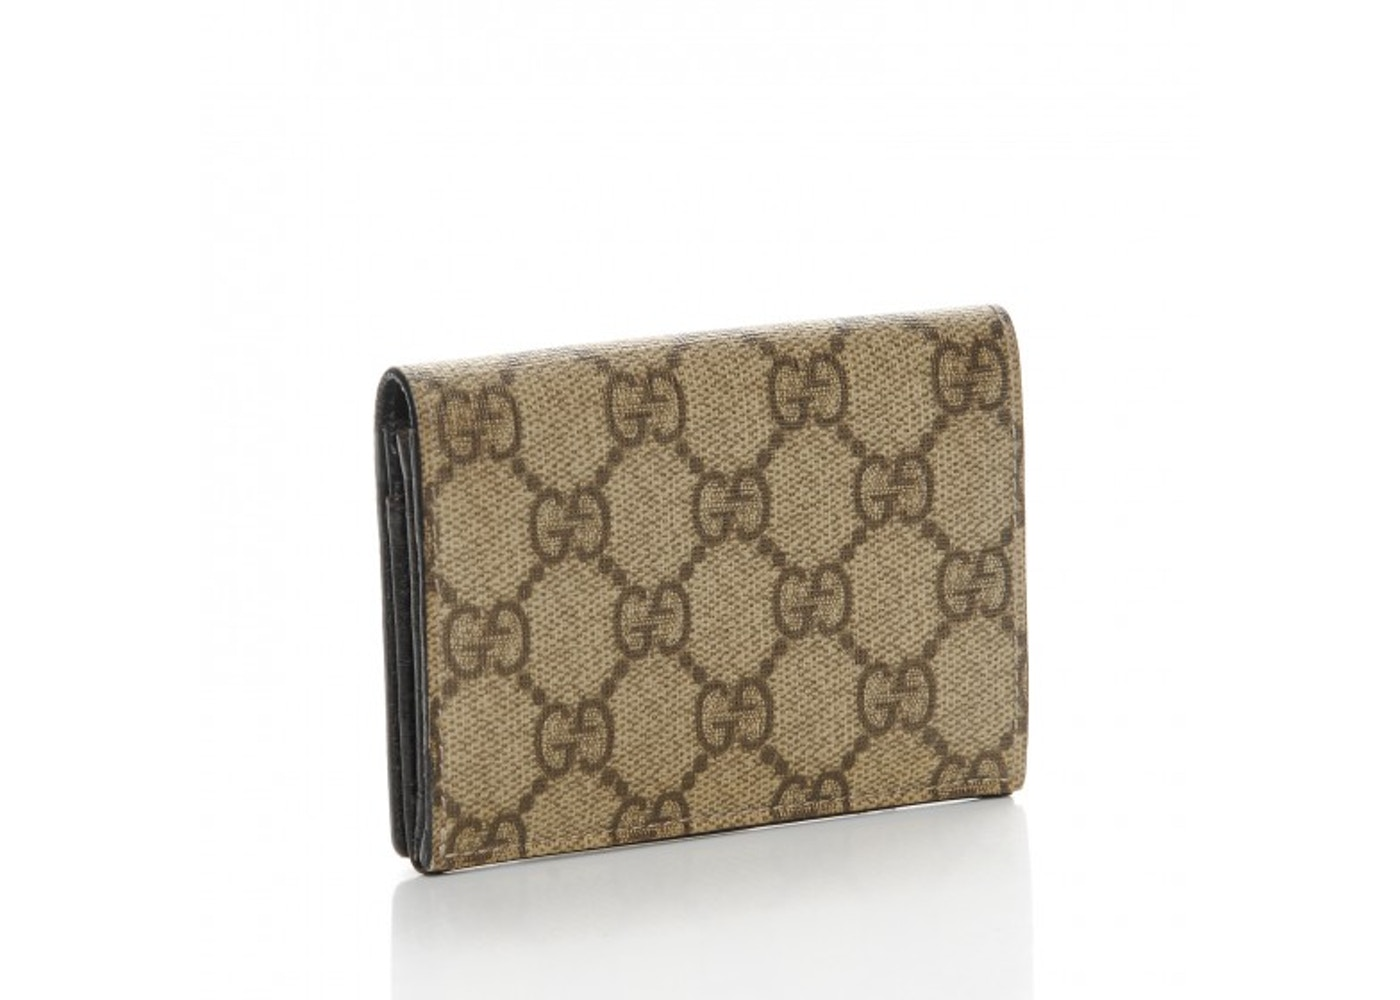 Gucci Business Card Holder Wallet Monogram GG Plus Brown/Beige